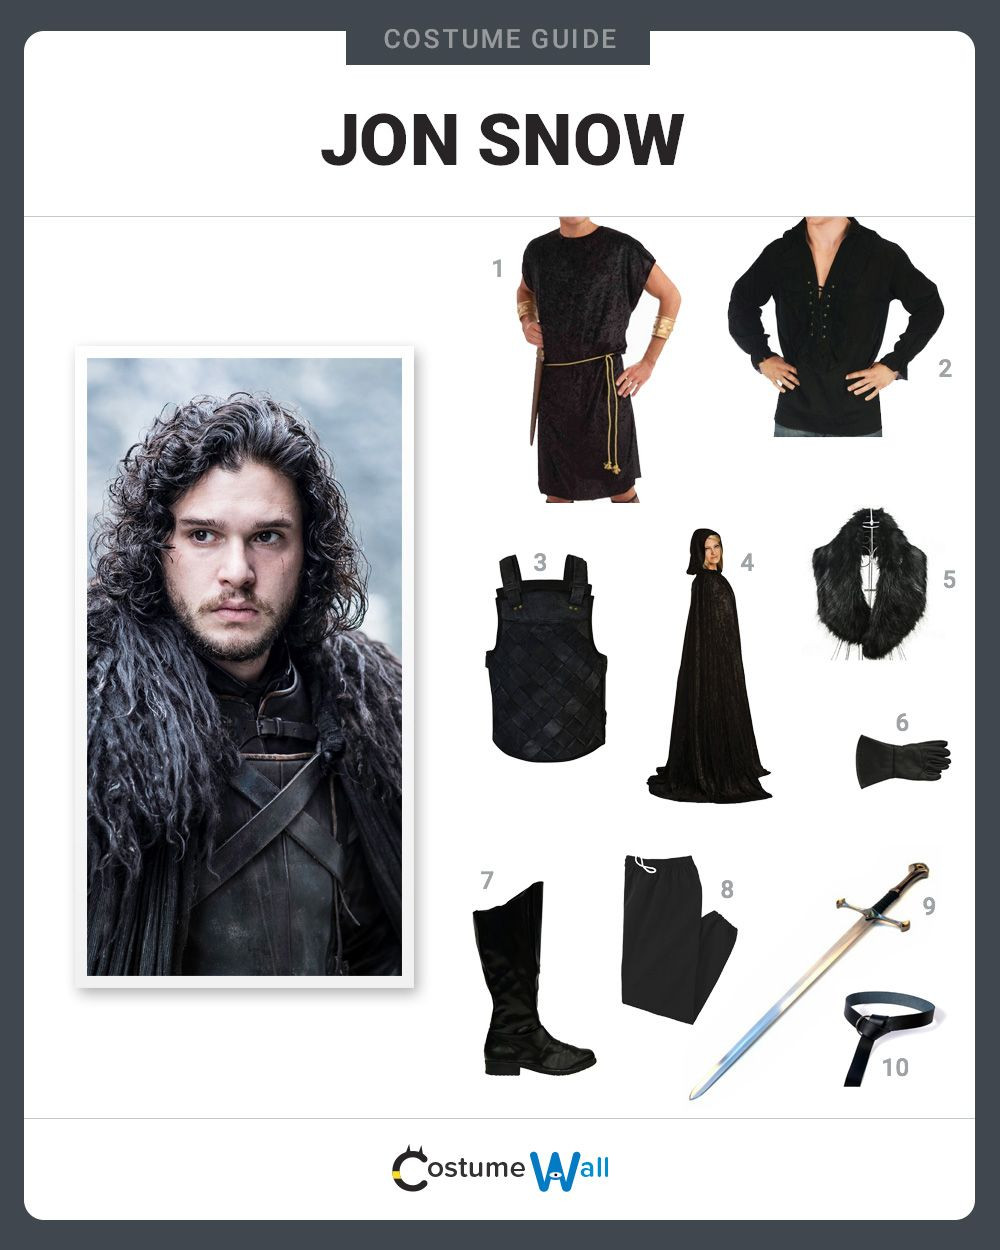 Best ideas about Jon Snow DIY Costume . Save or Pin Dress Like Jon Snow Costume and Cosplay Guide Now.